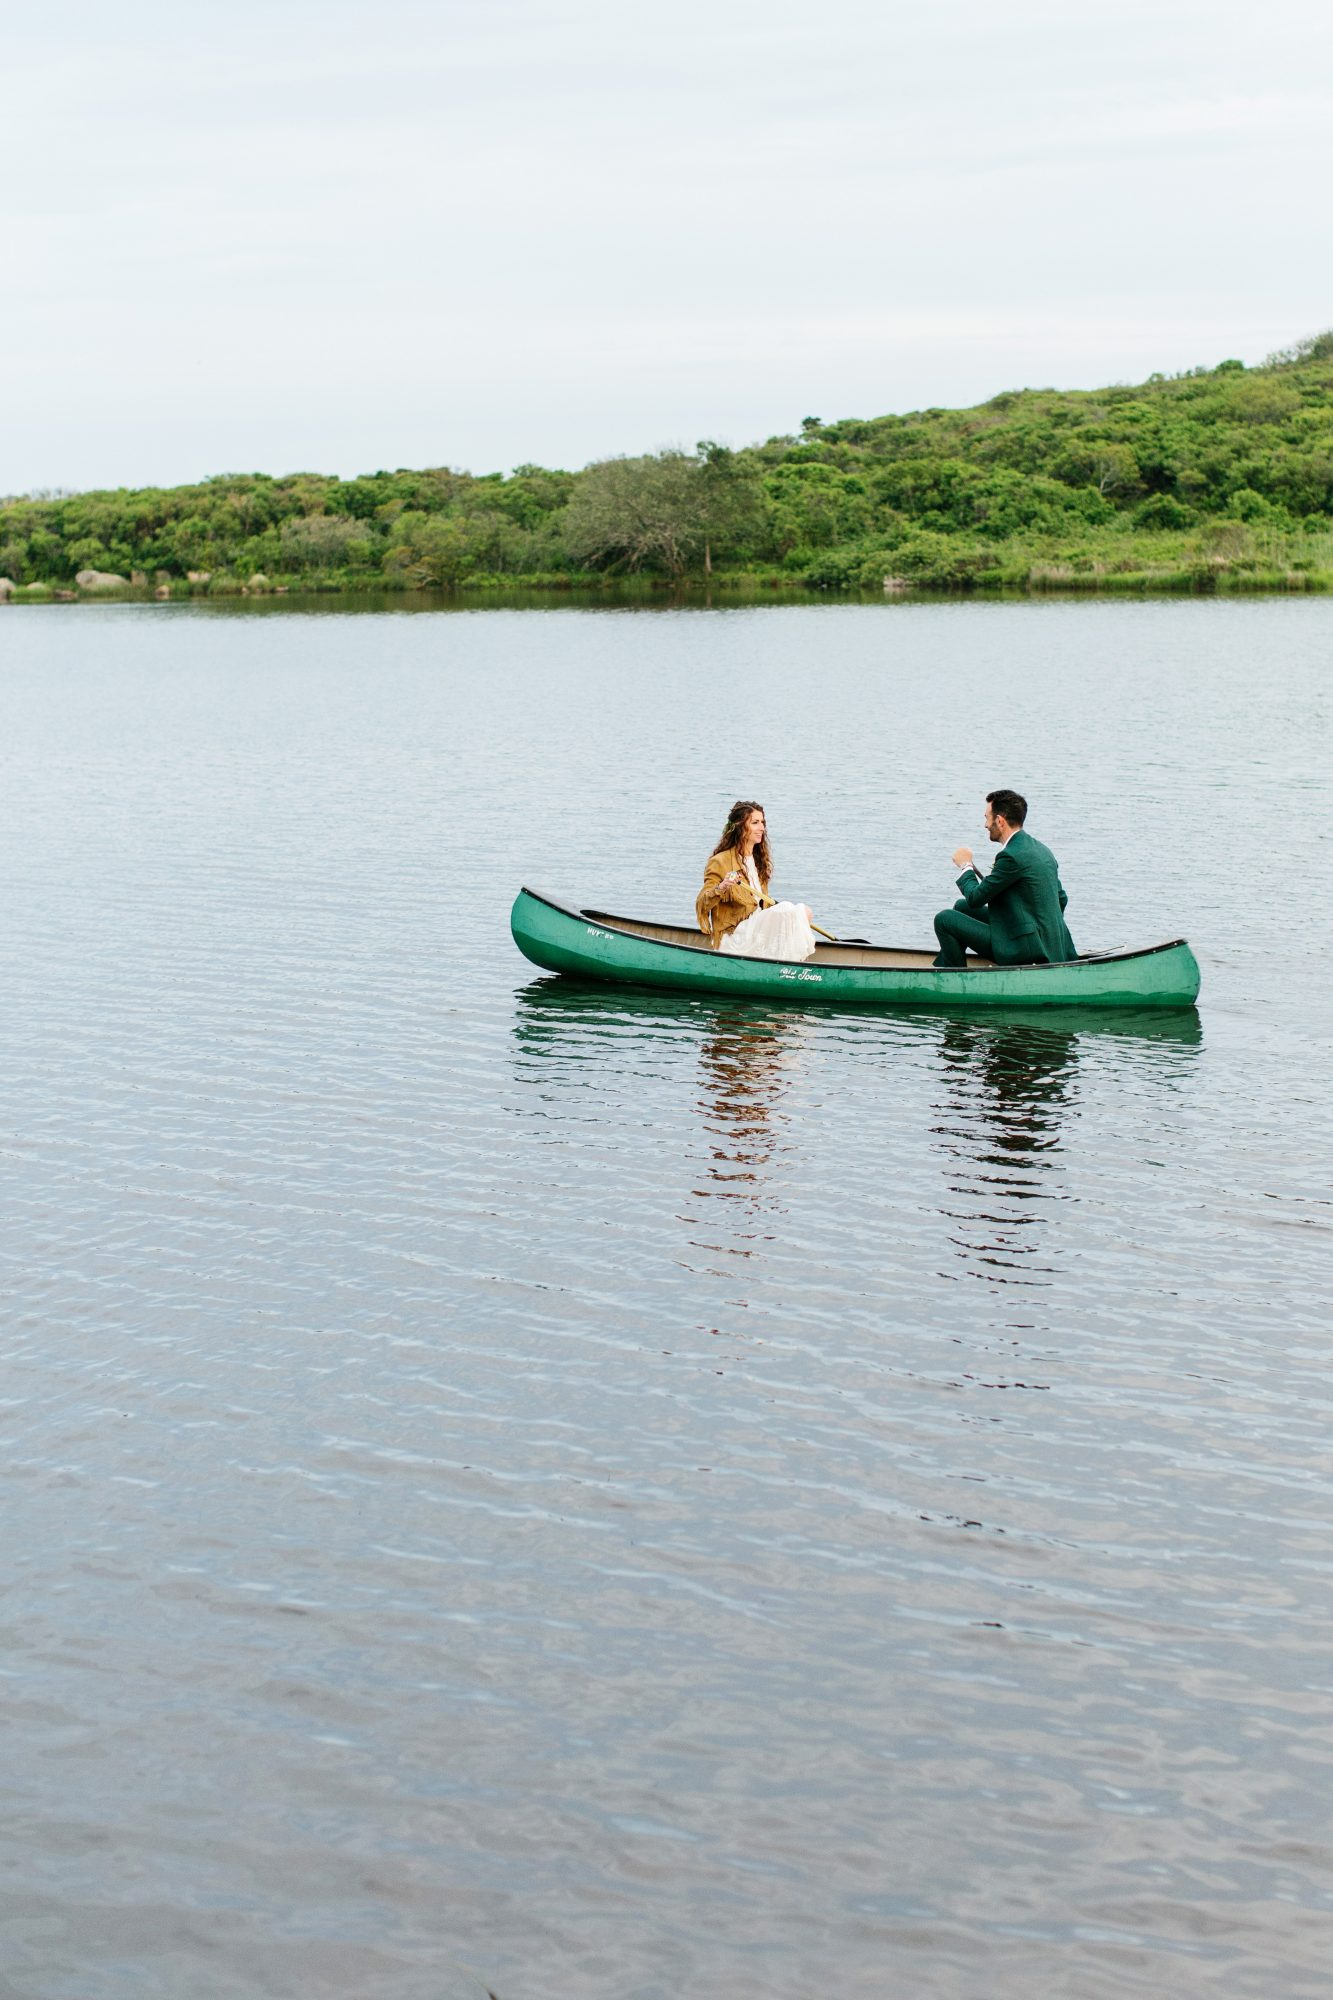 molly ed wedding couple bride groom canoe lake